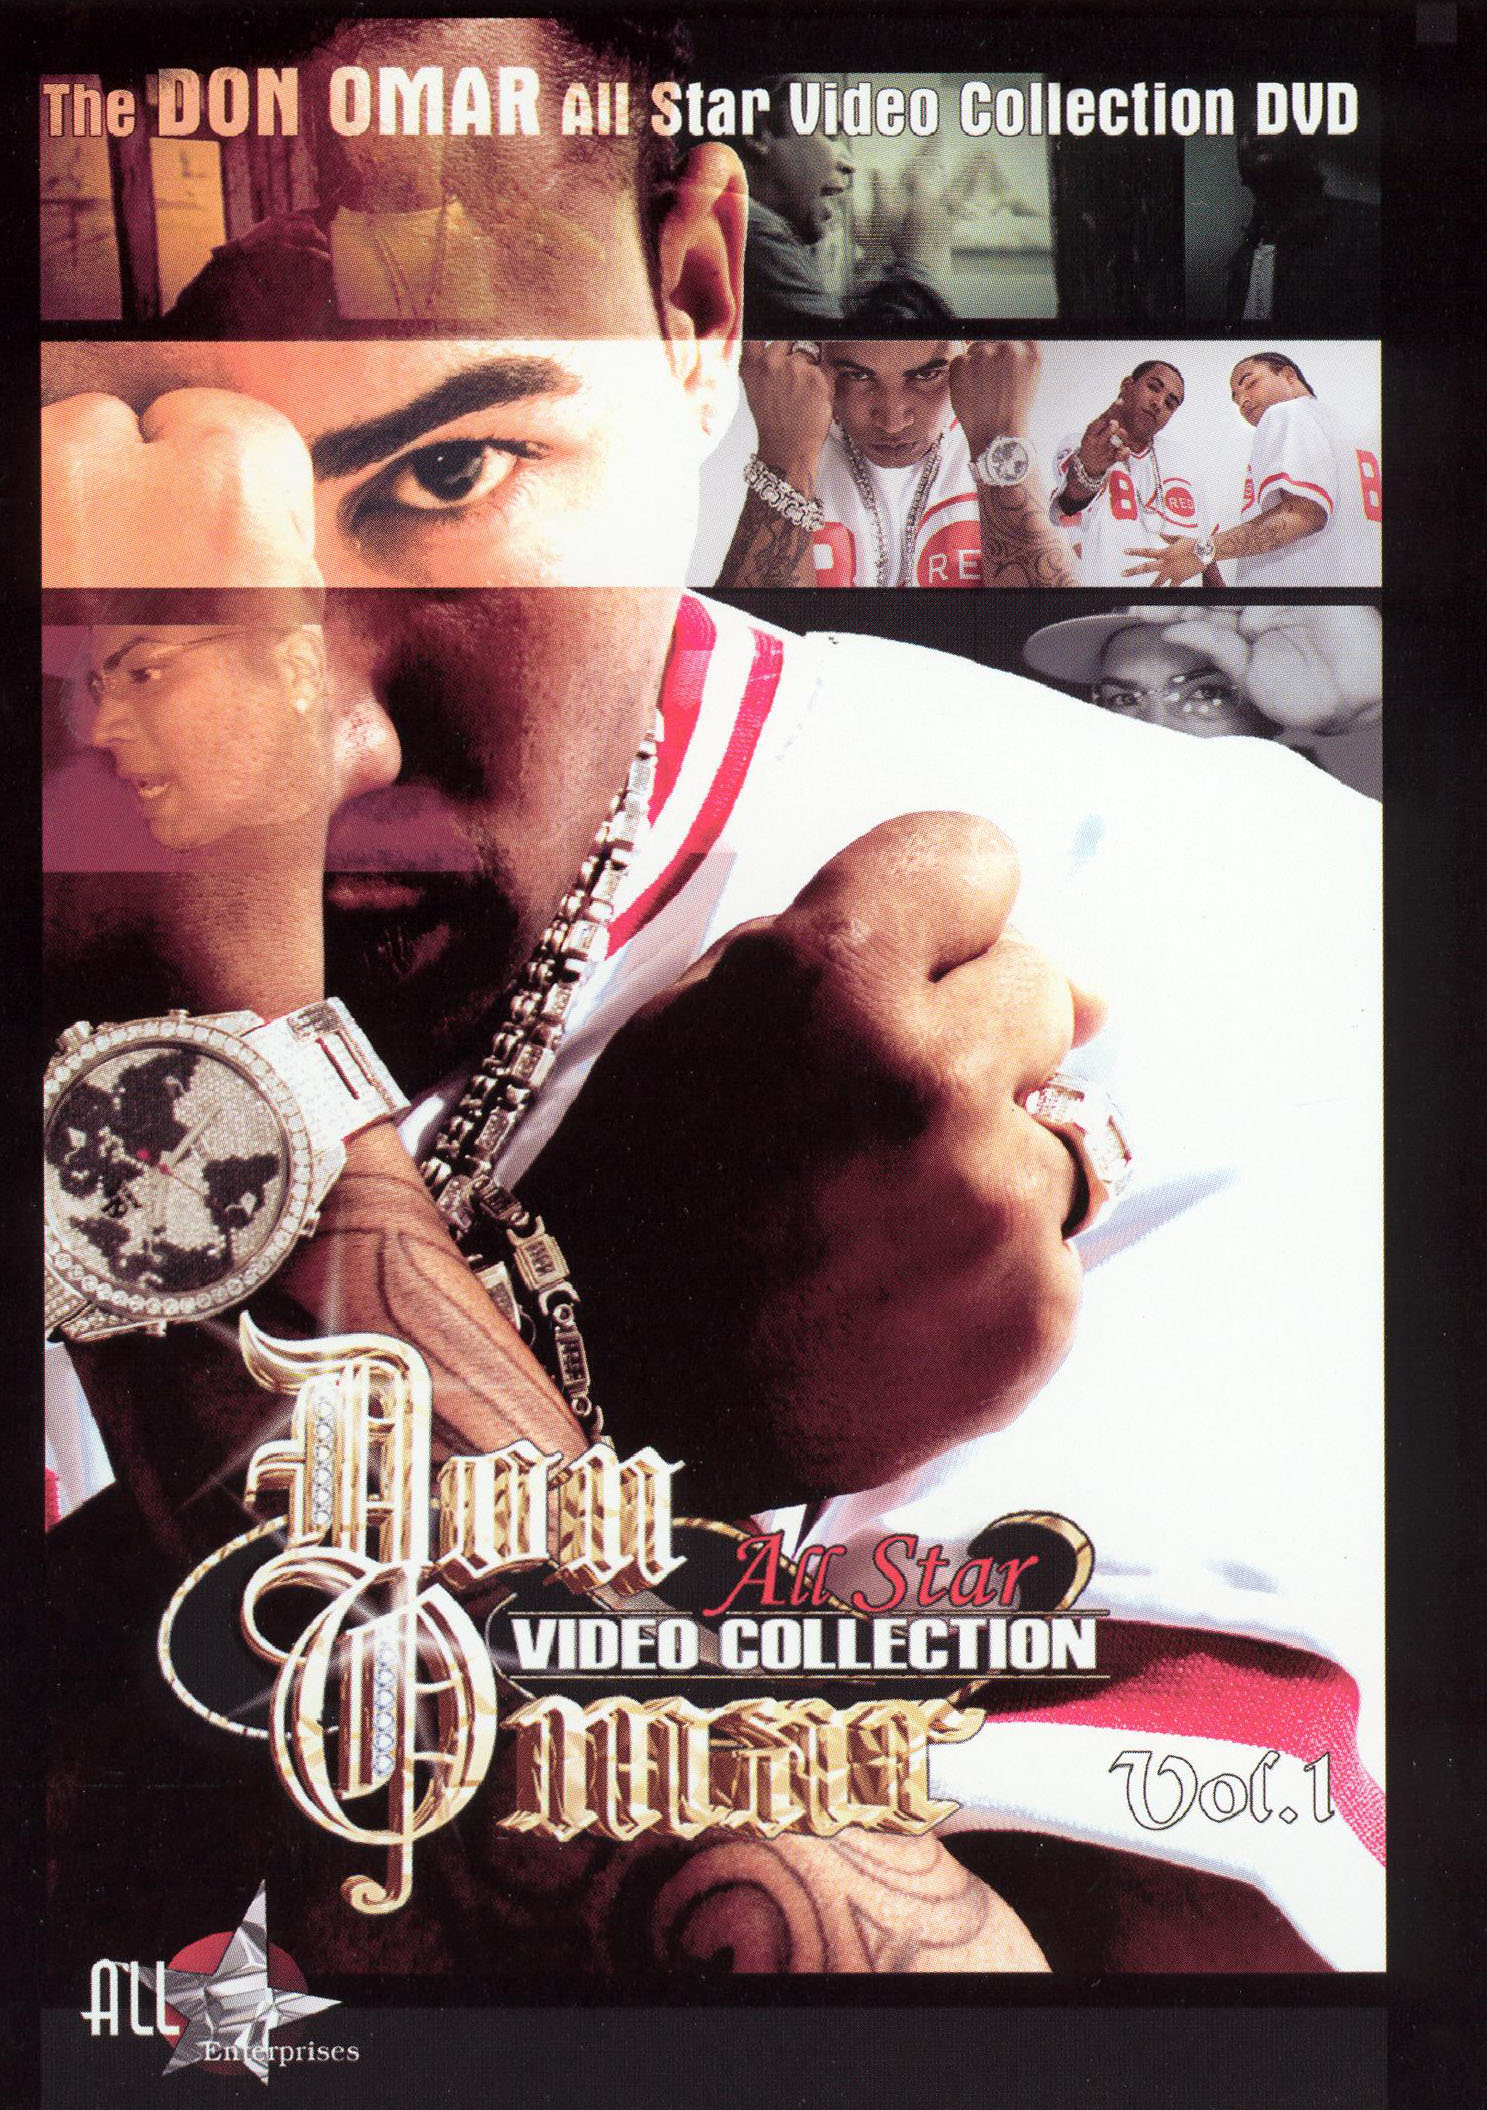 Don Omar: Don Omar Video Collection, Vol. 1